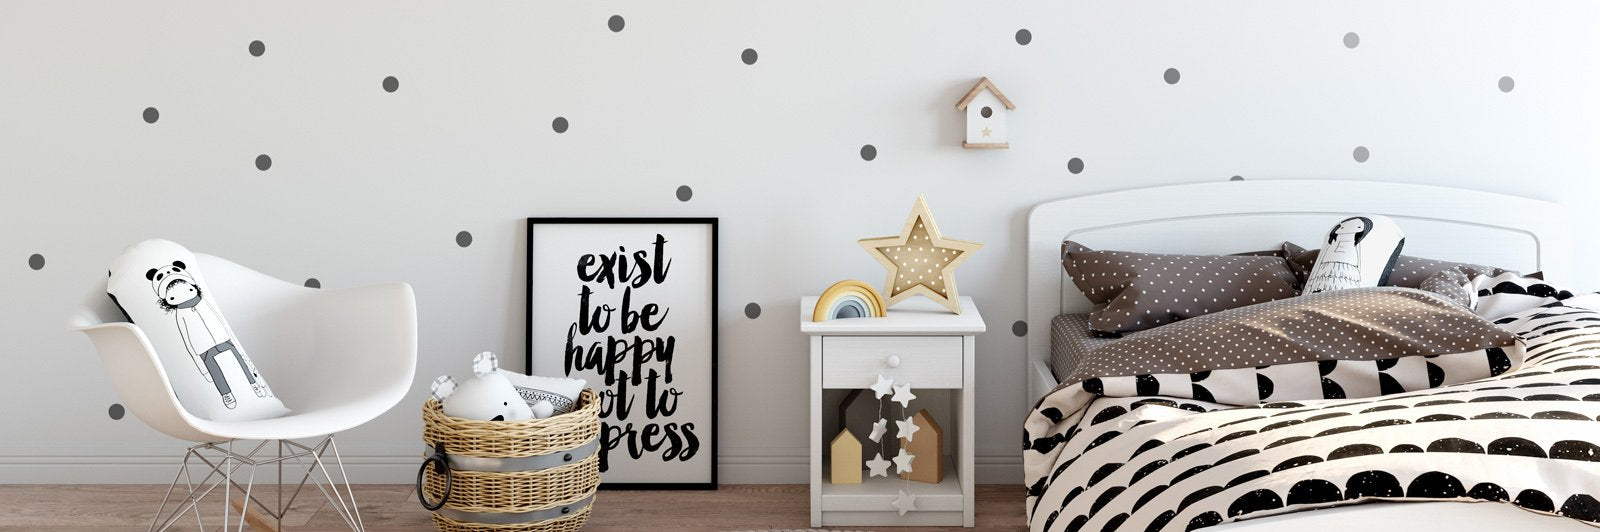 NURSERY Wall ART DECALS